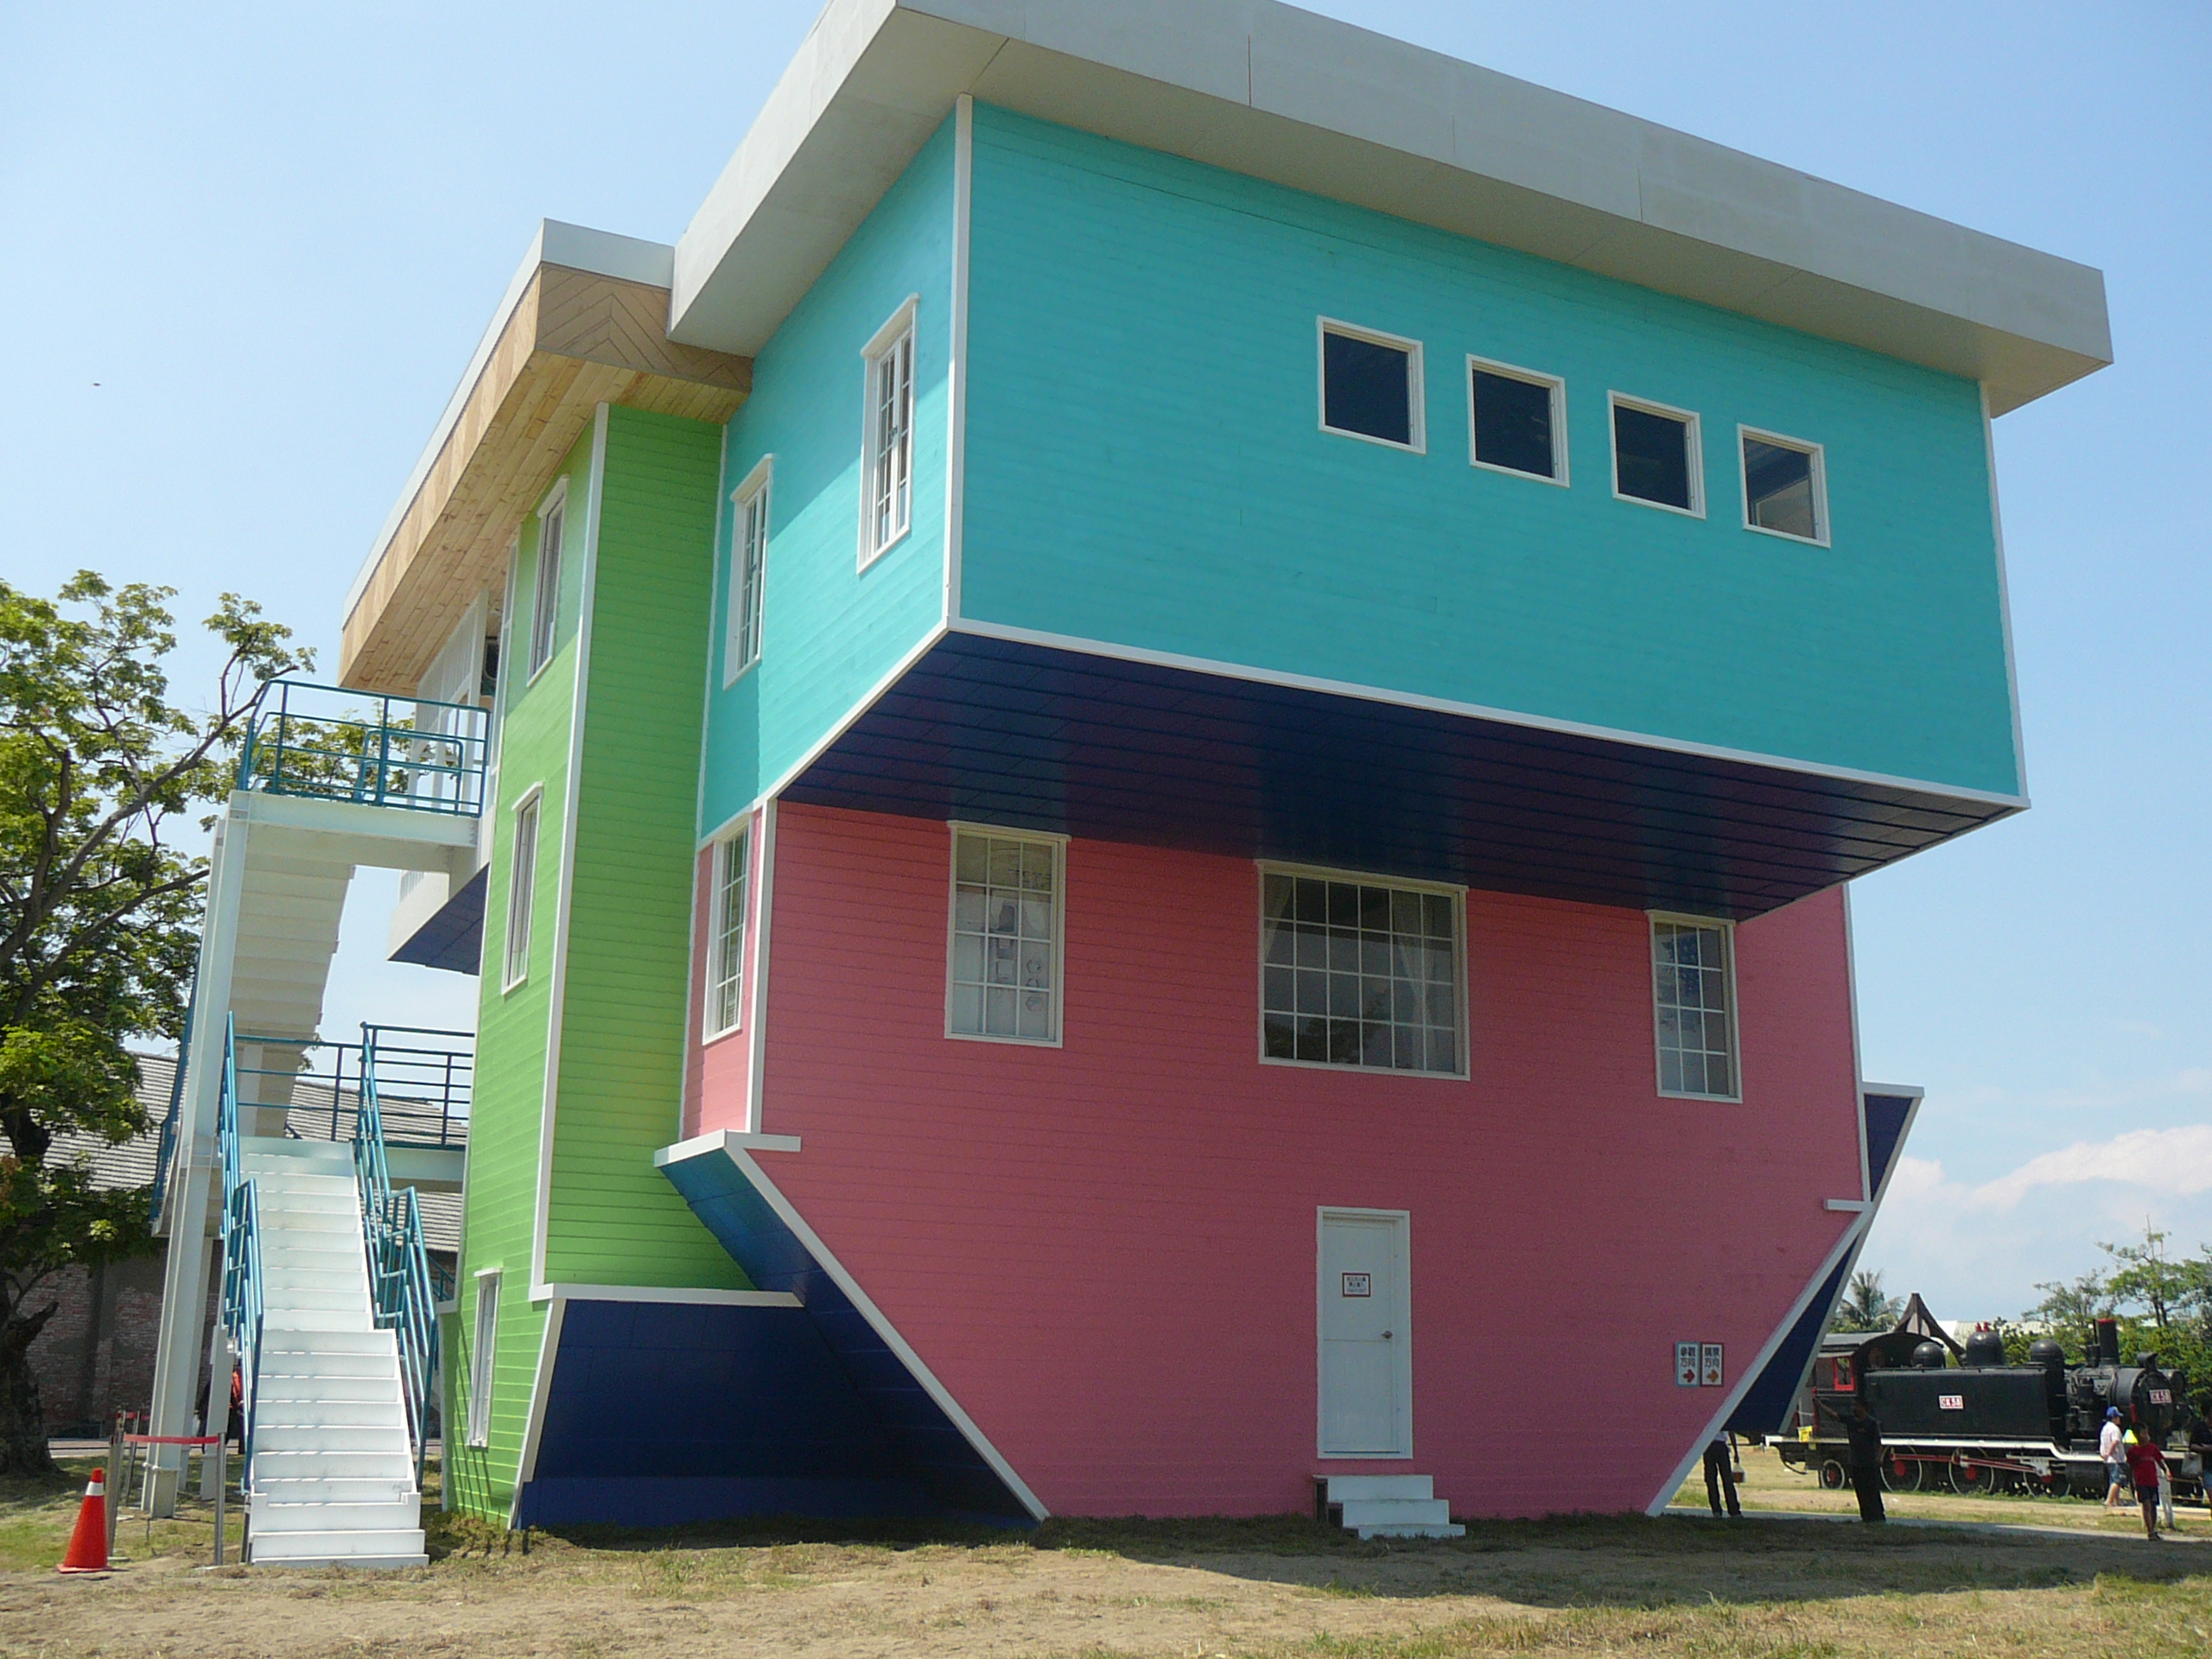 File:Pier-2 Upside Down House in Kaohsiung.jpg - Wikimedia Commons